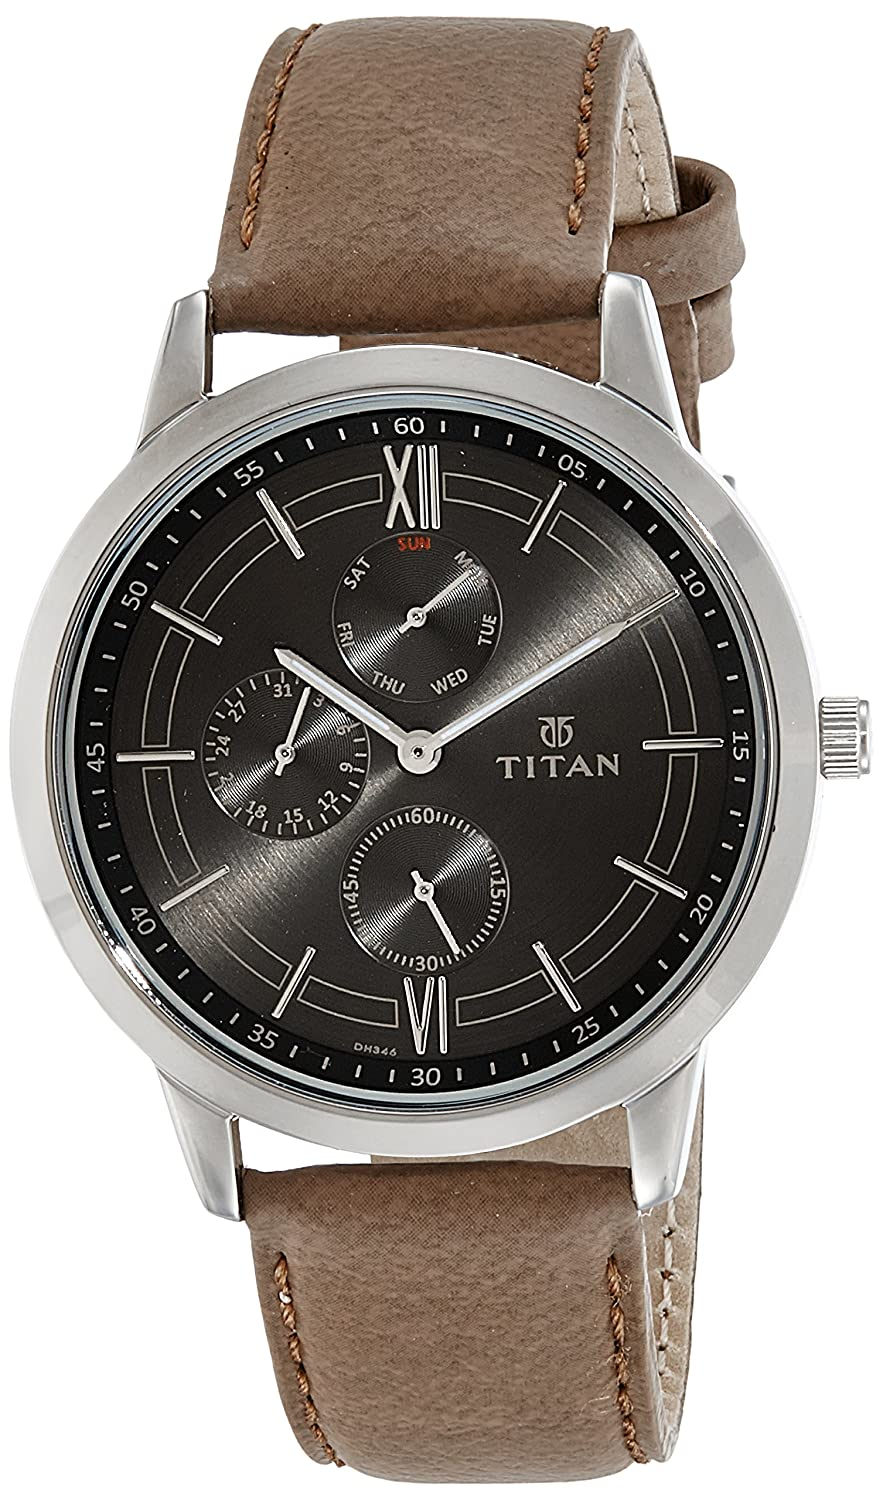 Titan Men s Chronograph Watch – Quartz, Water Resistant